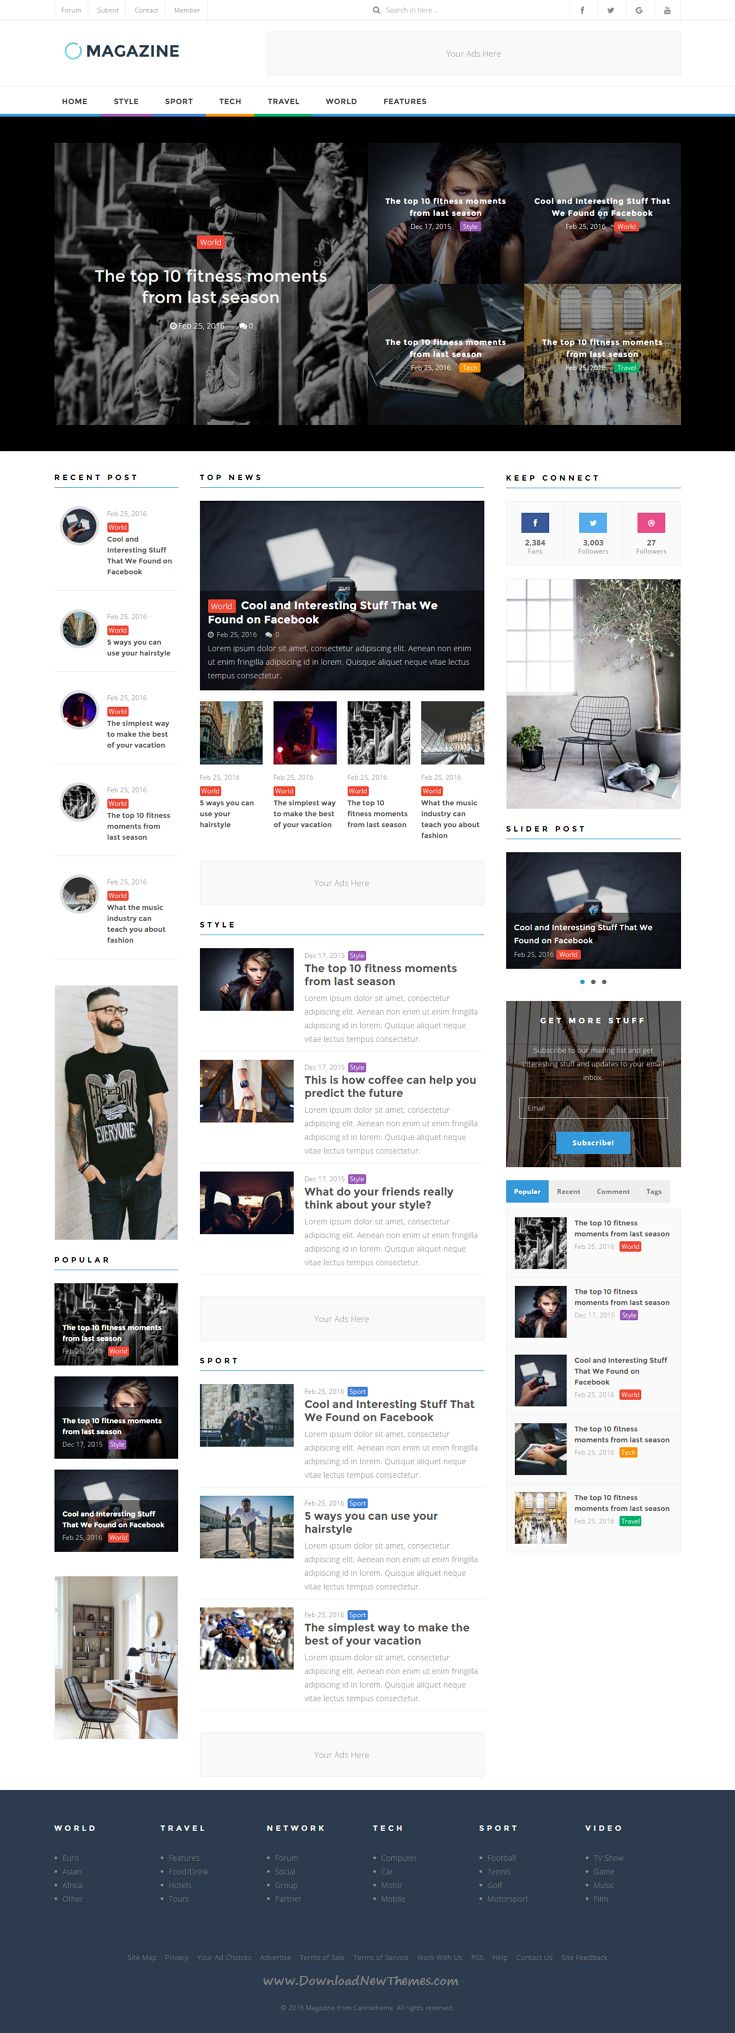 ST Magazine WordPress theme is suitable for creating a website for news or magazines. It comes in 4 stunning homepage layouts.